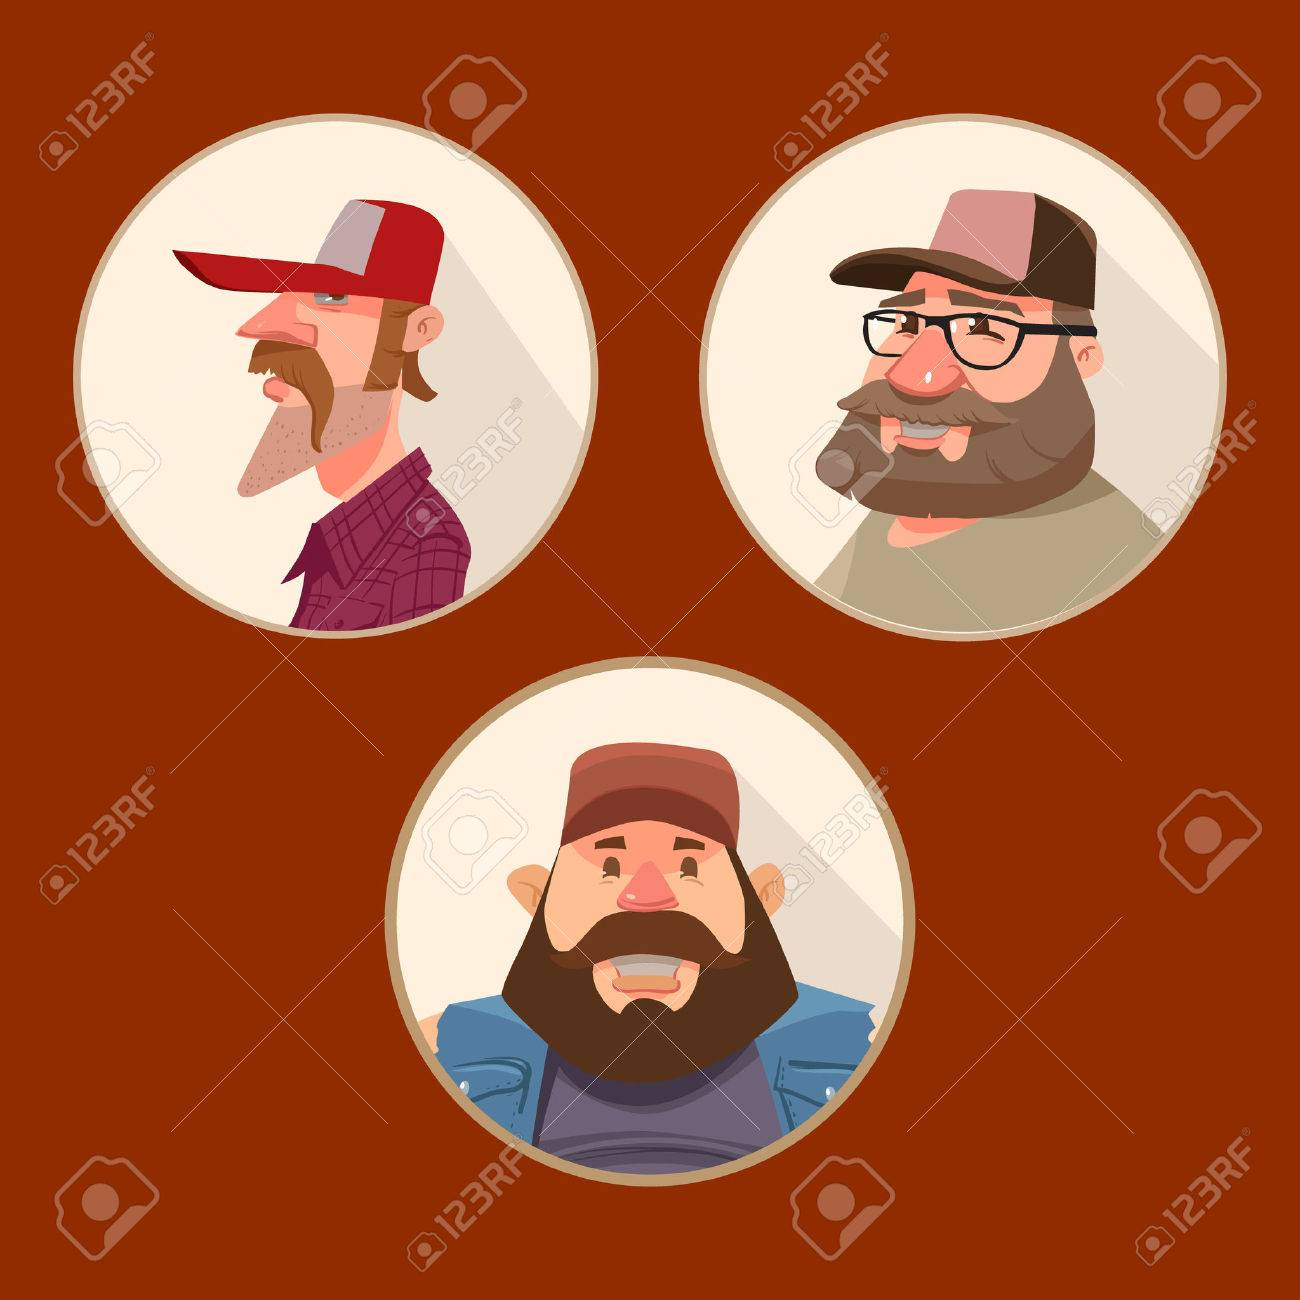 Set of funny avatars driver truck cartoon character portrait in circle vector